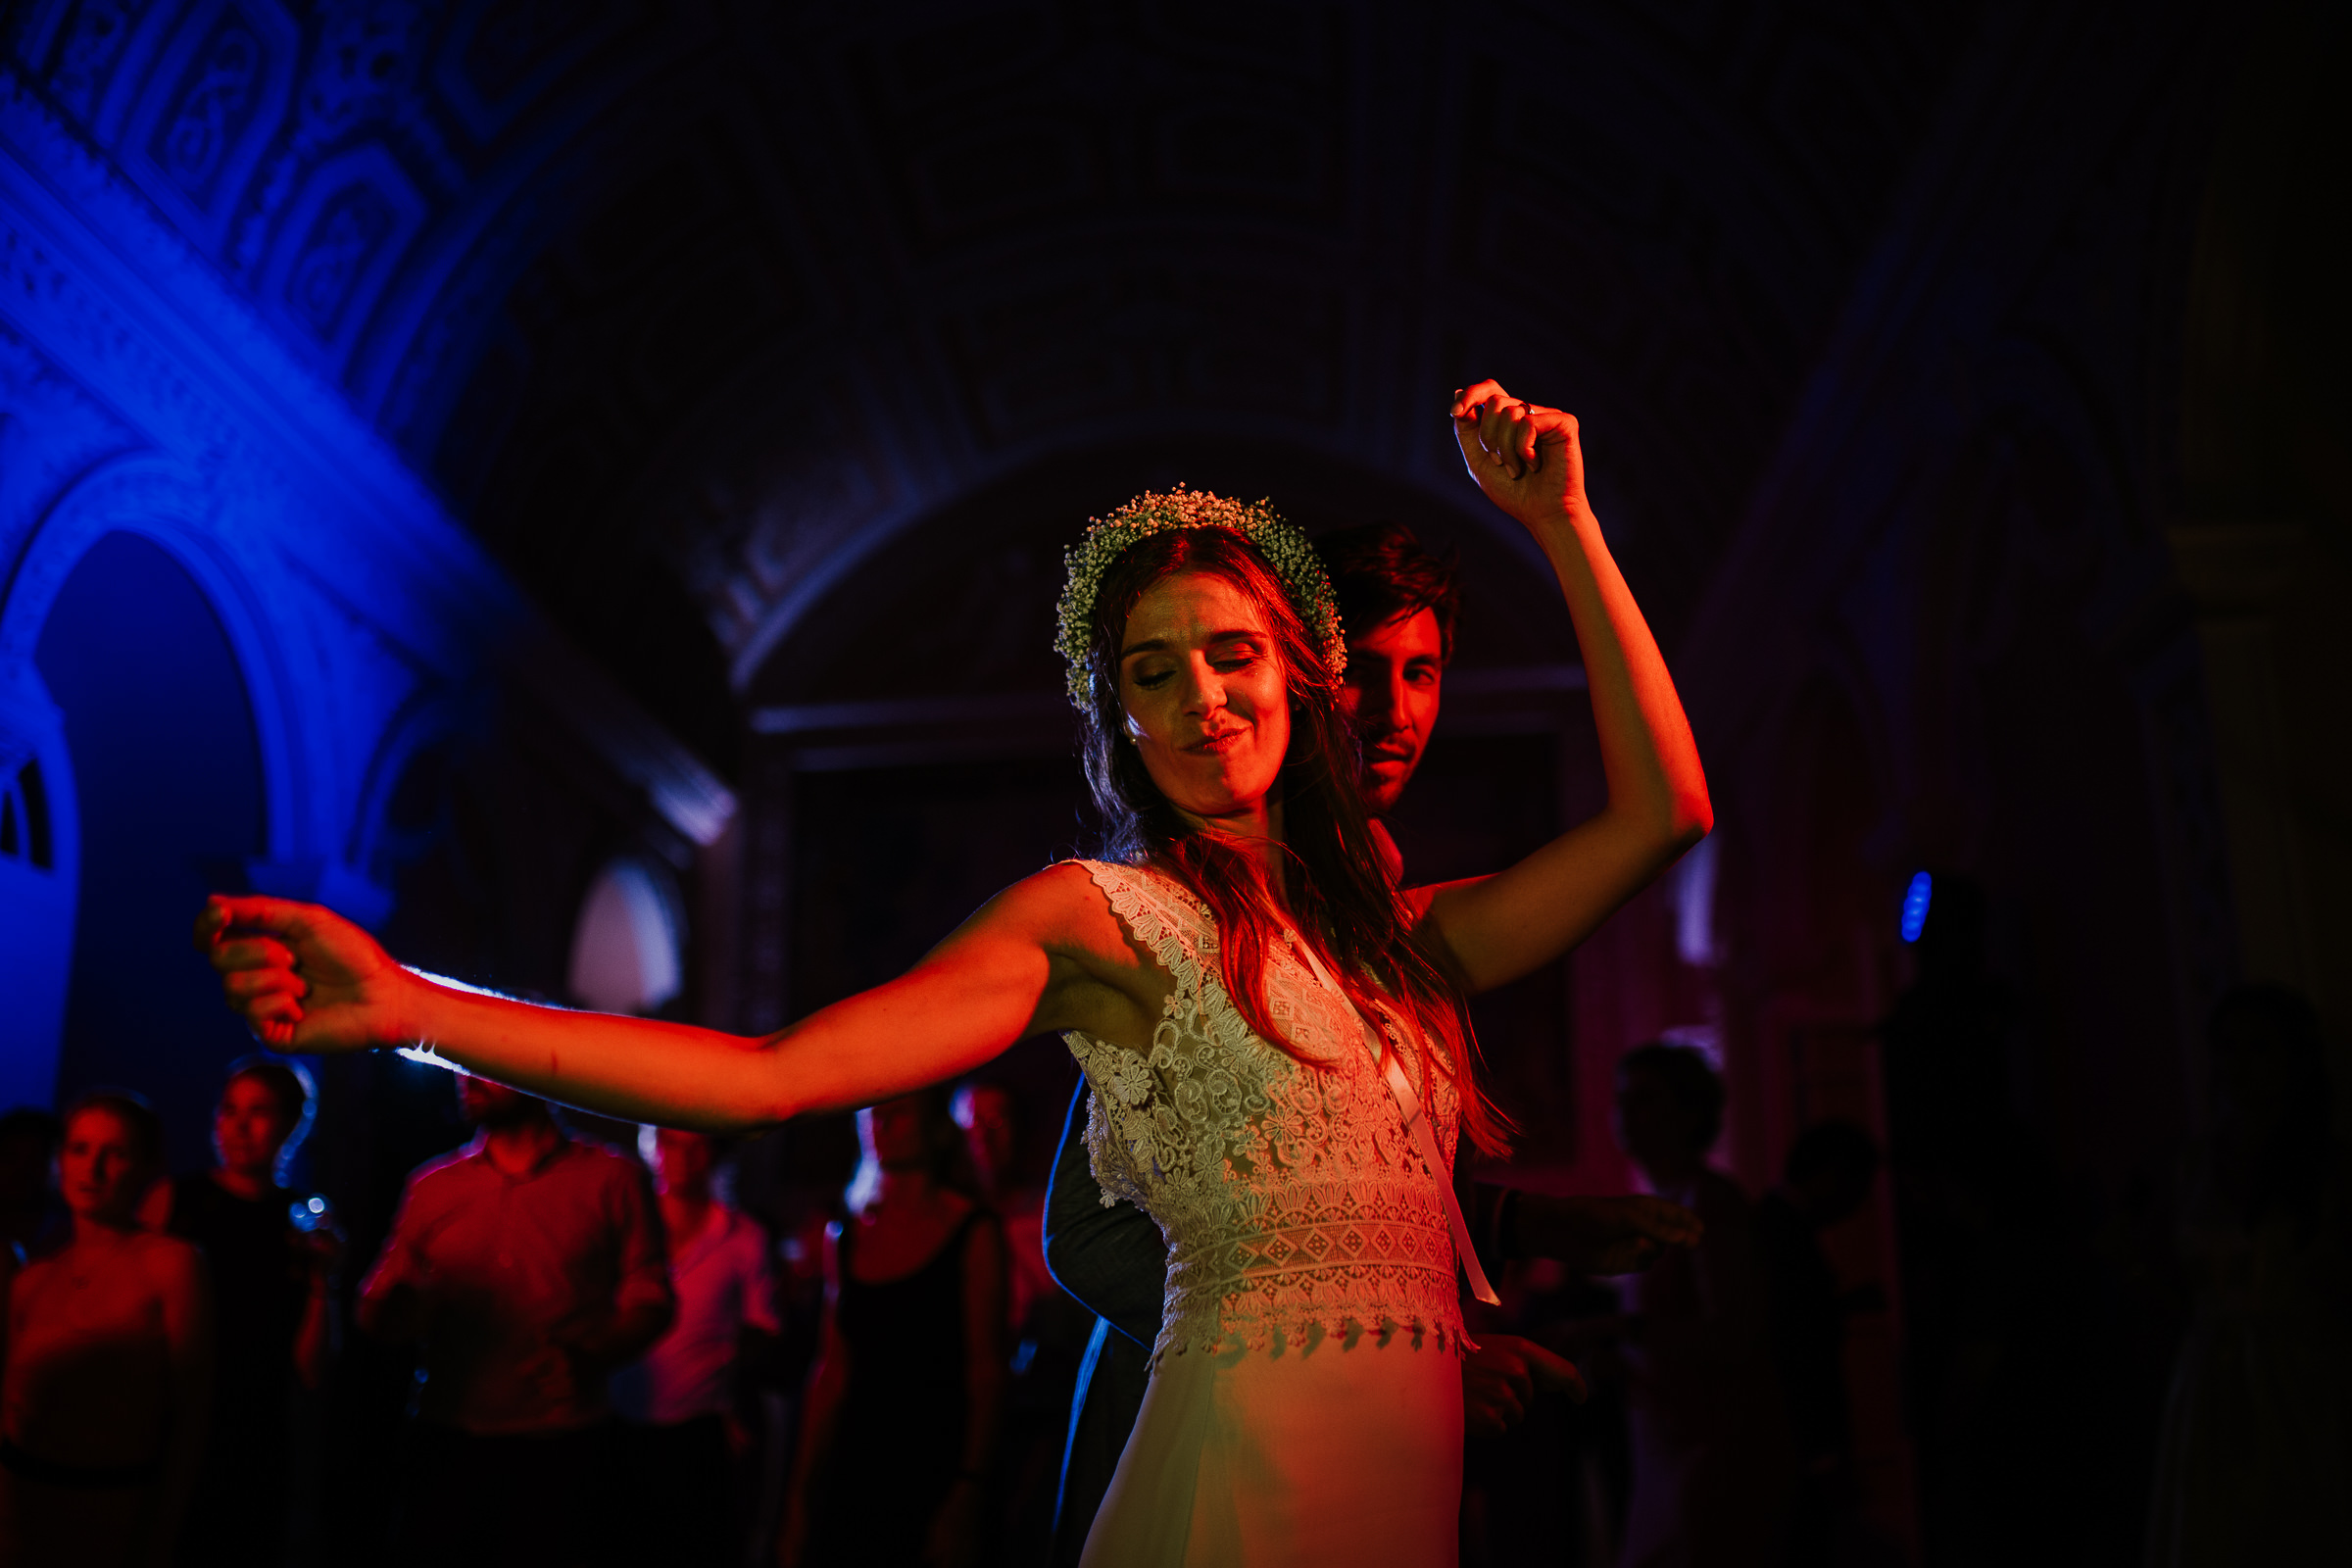 Bride dancing on wedding party with blue and red lights